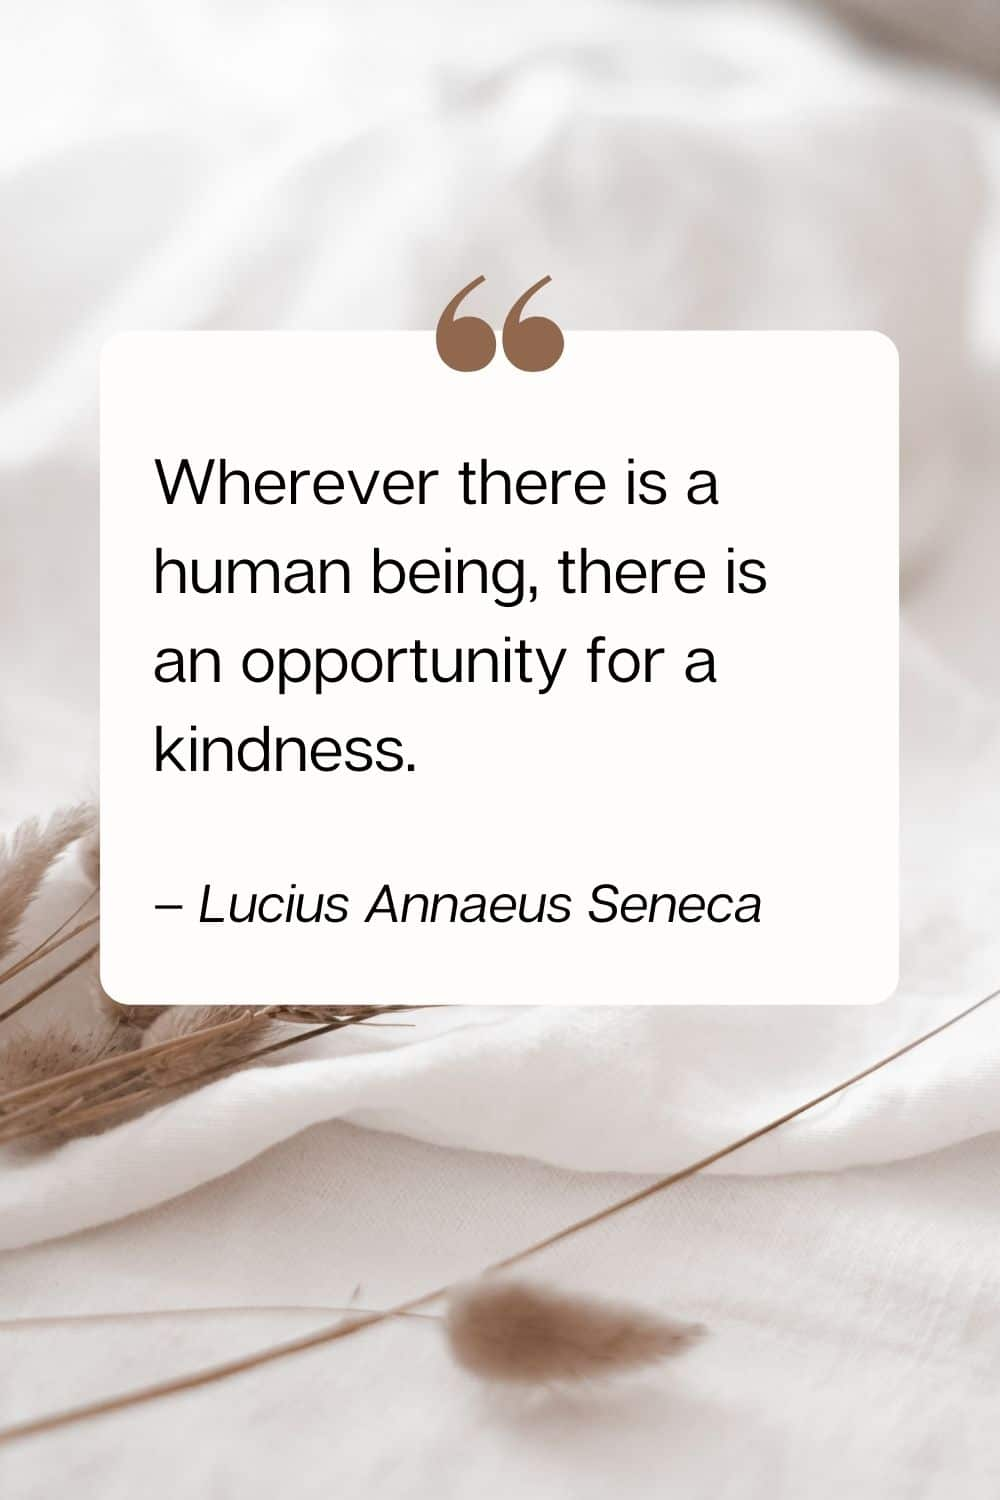 kindness quote - Wherever there is a human being, there is an opportunity for a kindness. – Lucius Annaeus Seneca